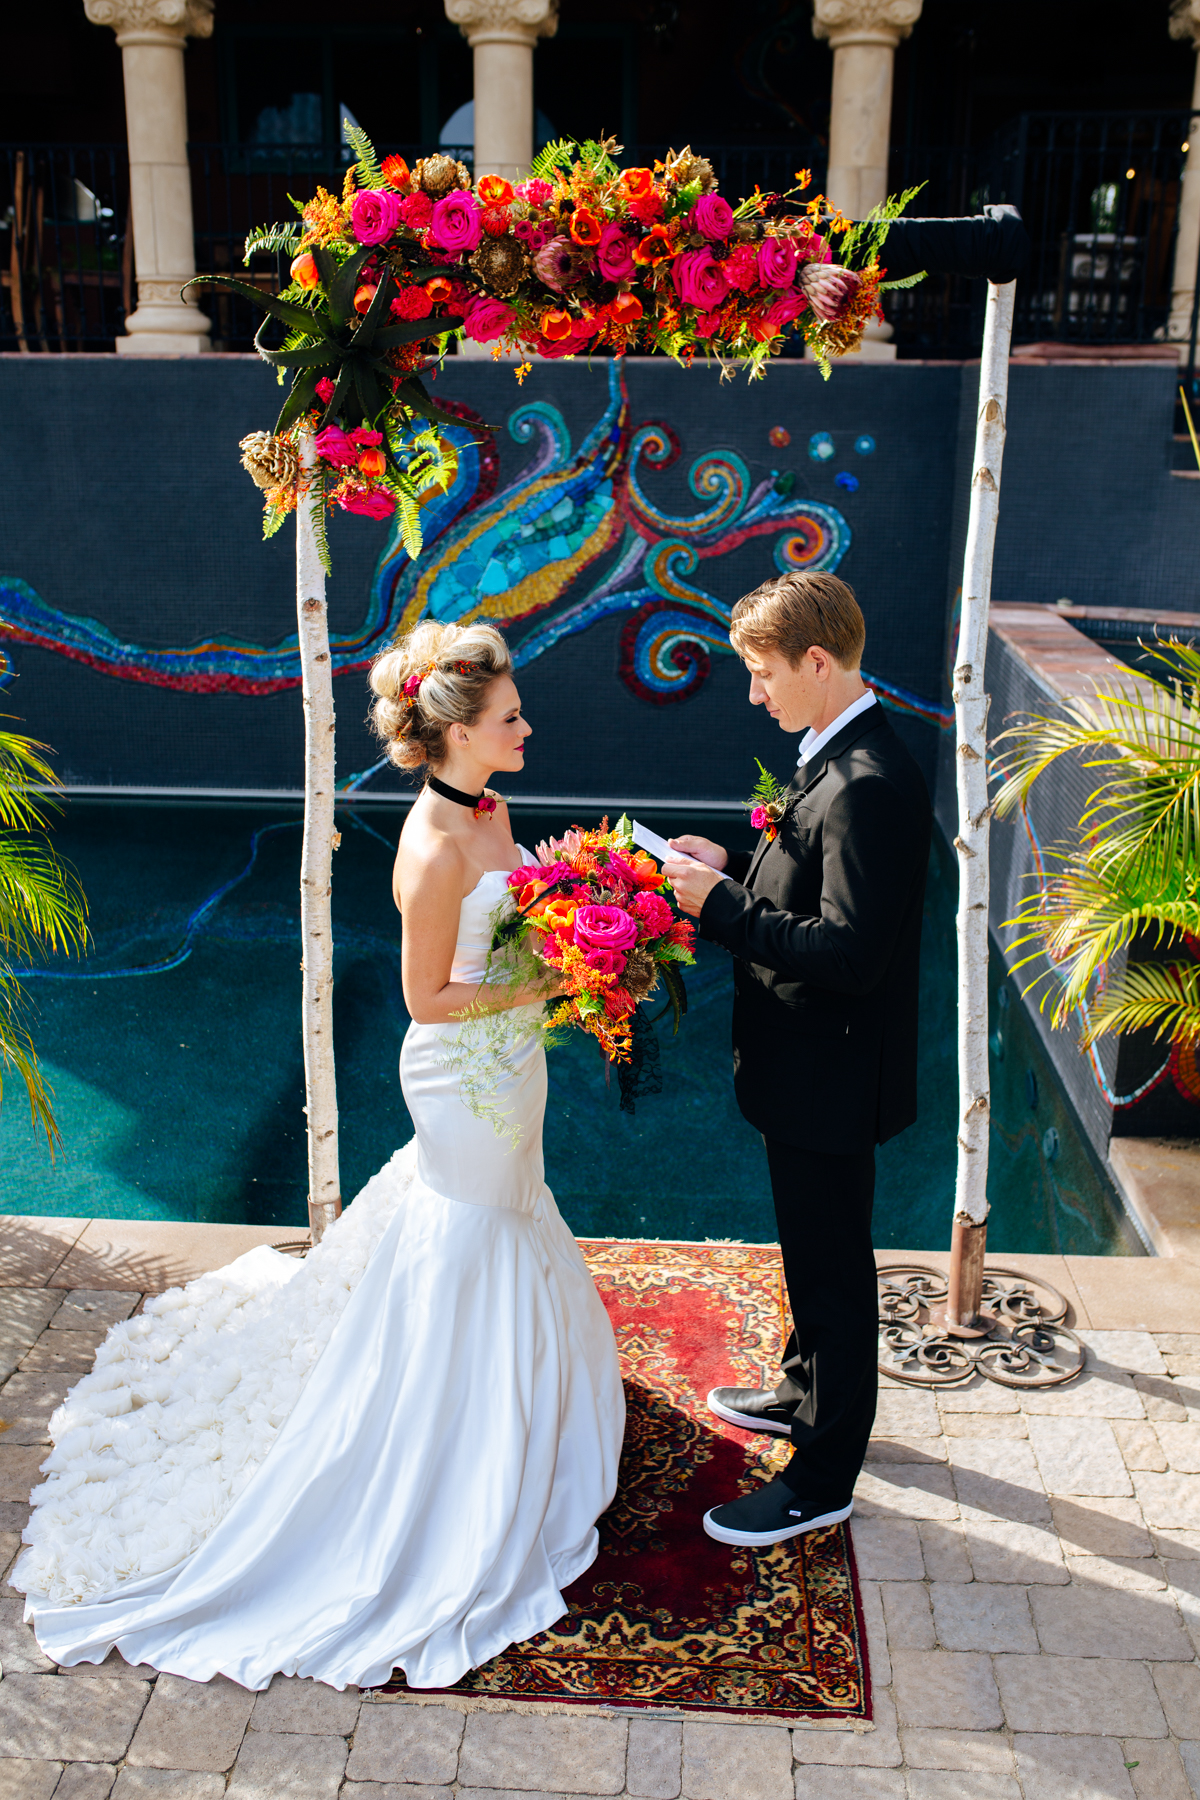 SamErica Studios - San Diego Palm Springs Wedding Photographer - Colorful Rock and Roll Styled Shoot-76.jpg